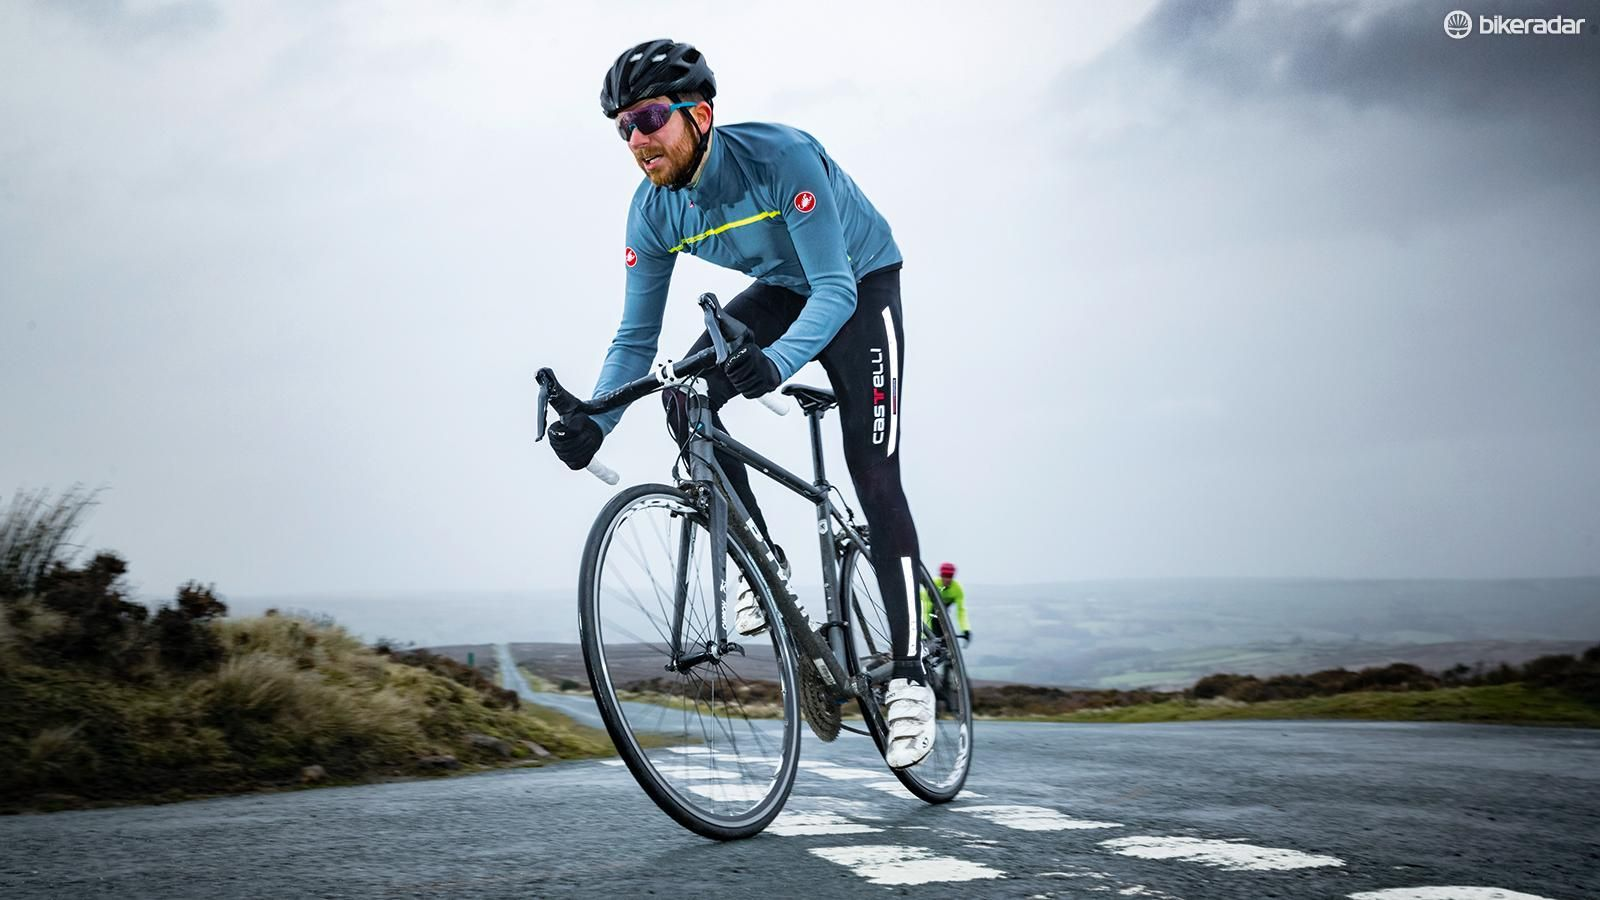 The Best Cheap Road Bikes 2020 9 Great Choices For 650 Or Less Cheap Road Bikes Bicycle Road Bikes